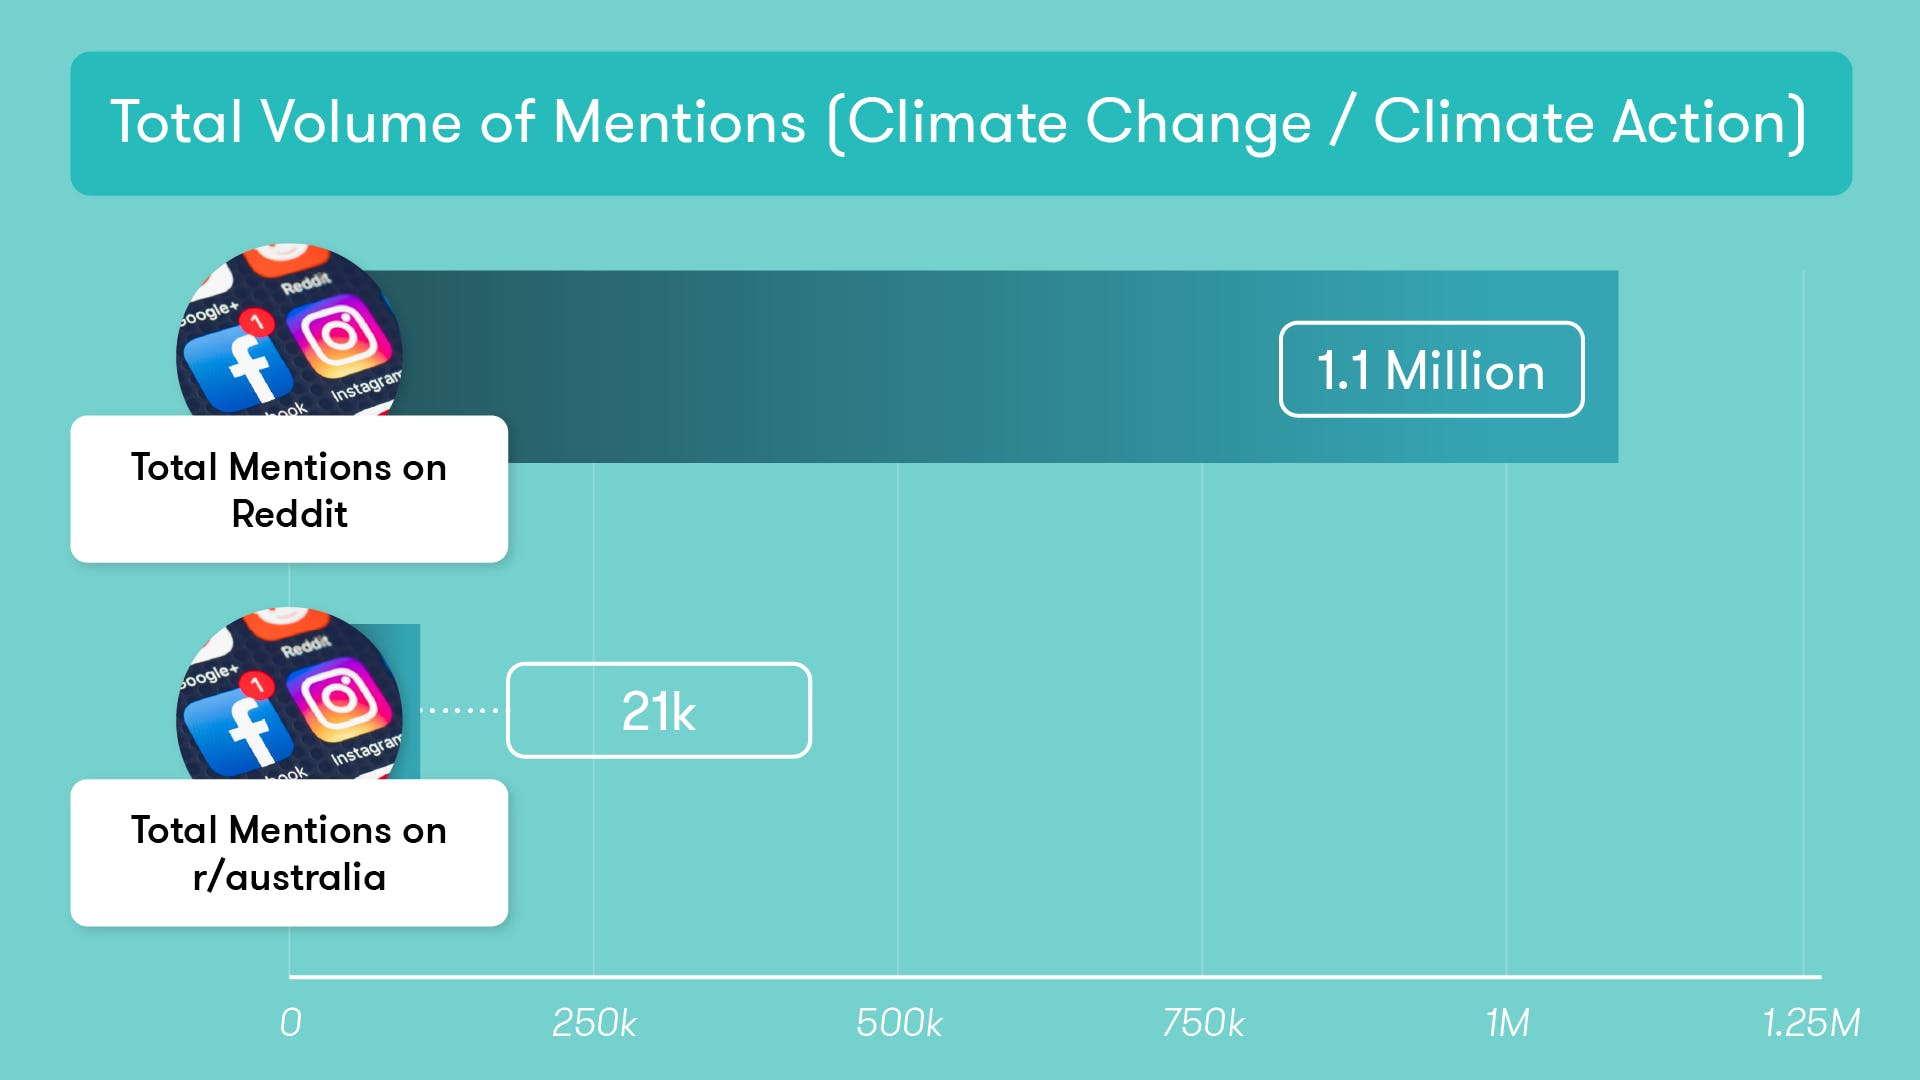 Climate action mentions on Reddit